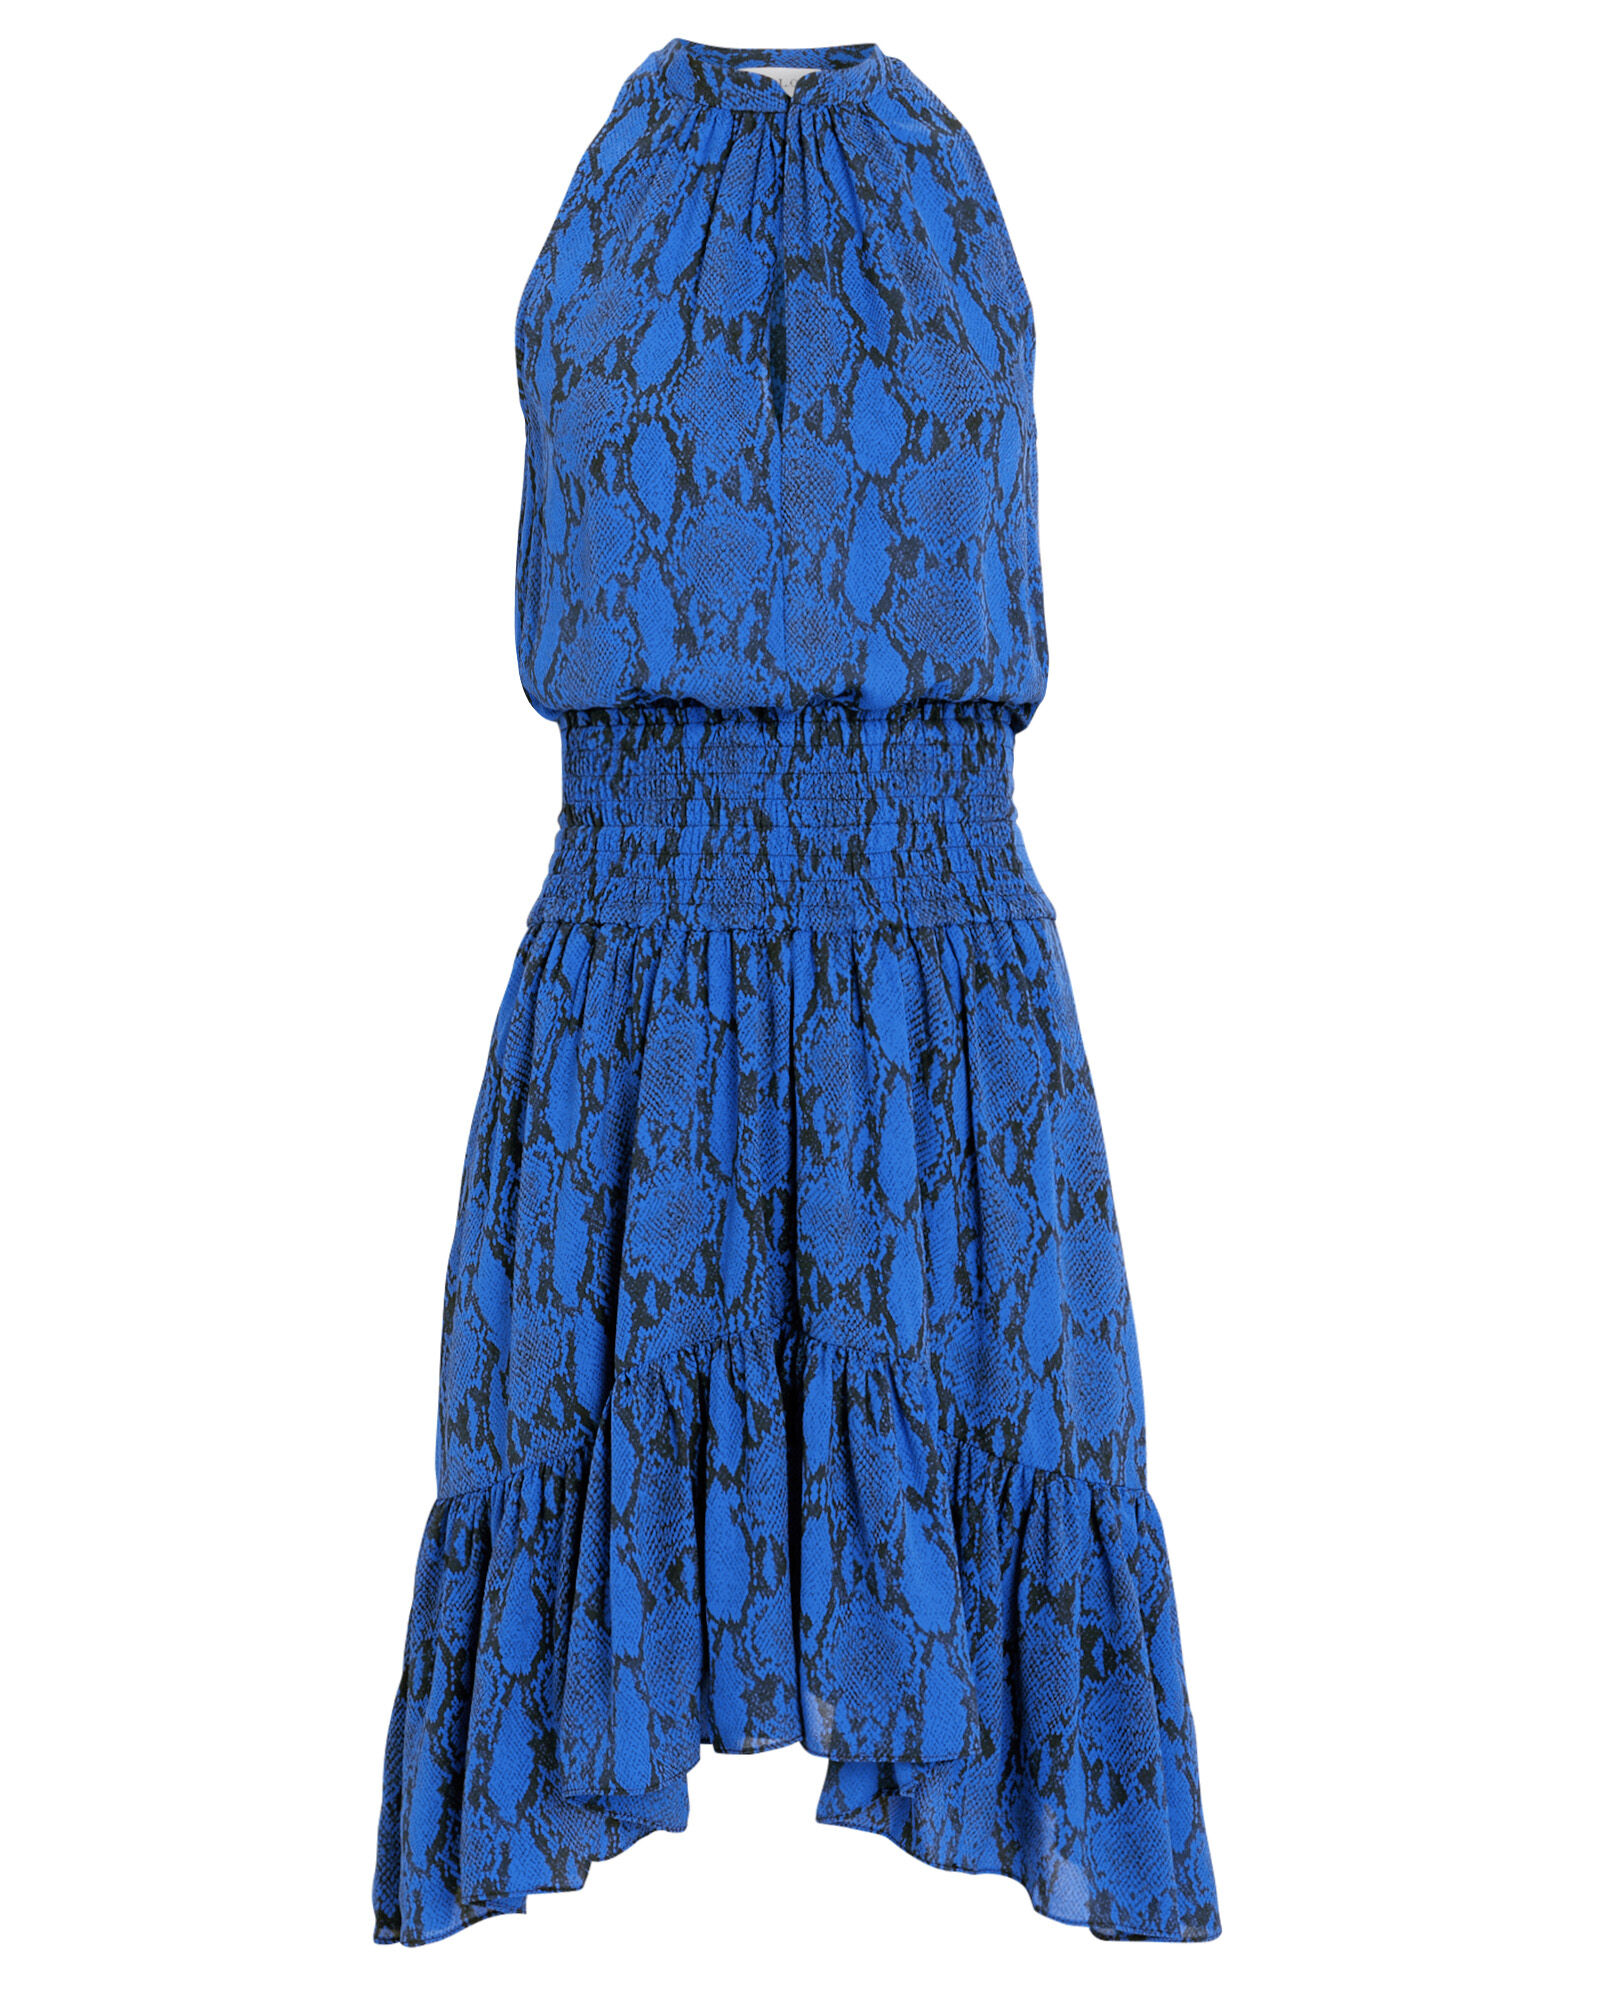 Riviera Snakeskin-Printed Silk Dress, BLUE/PYTHON, hi-res